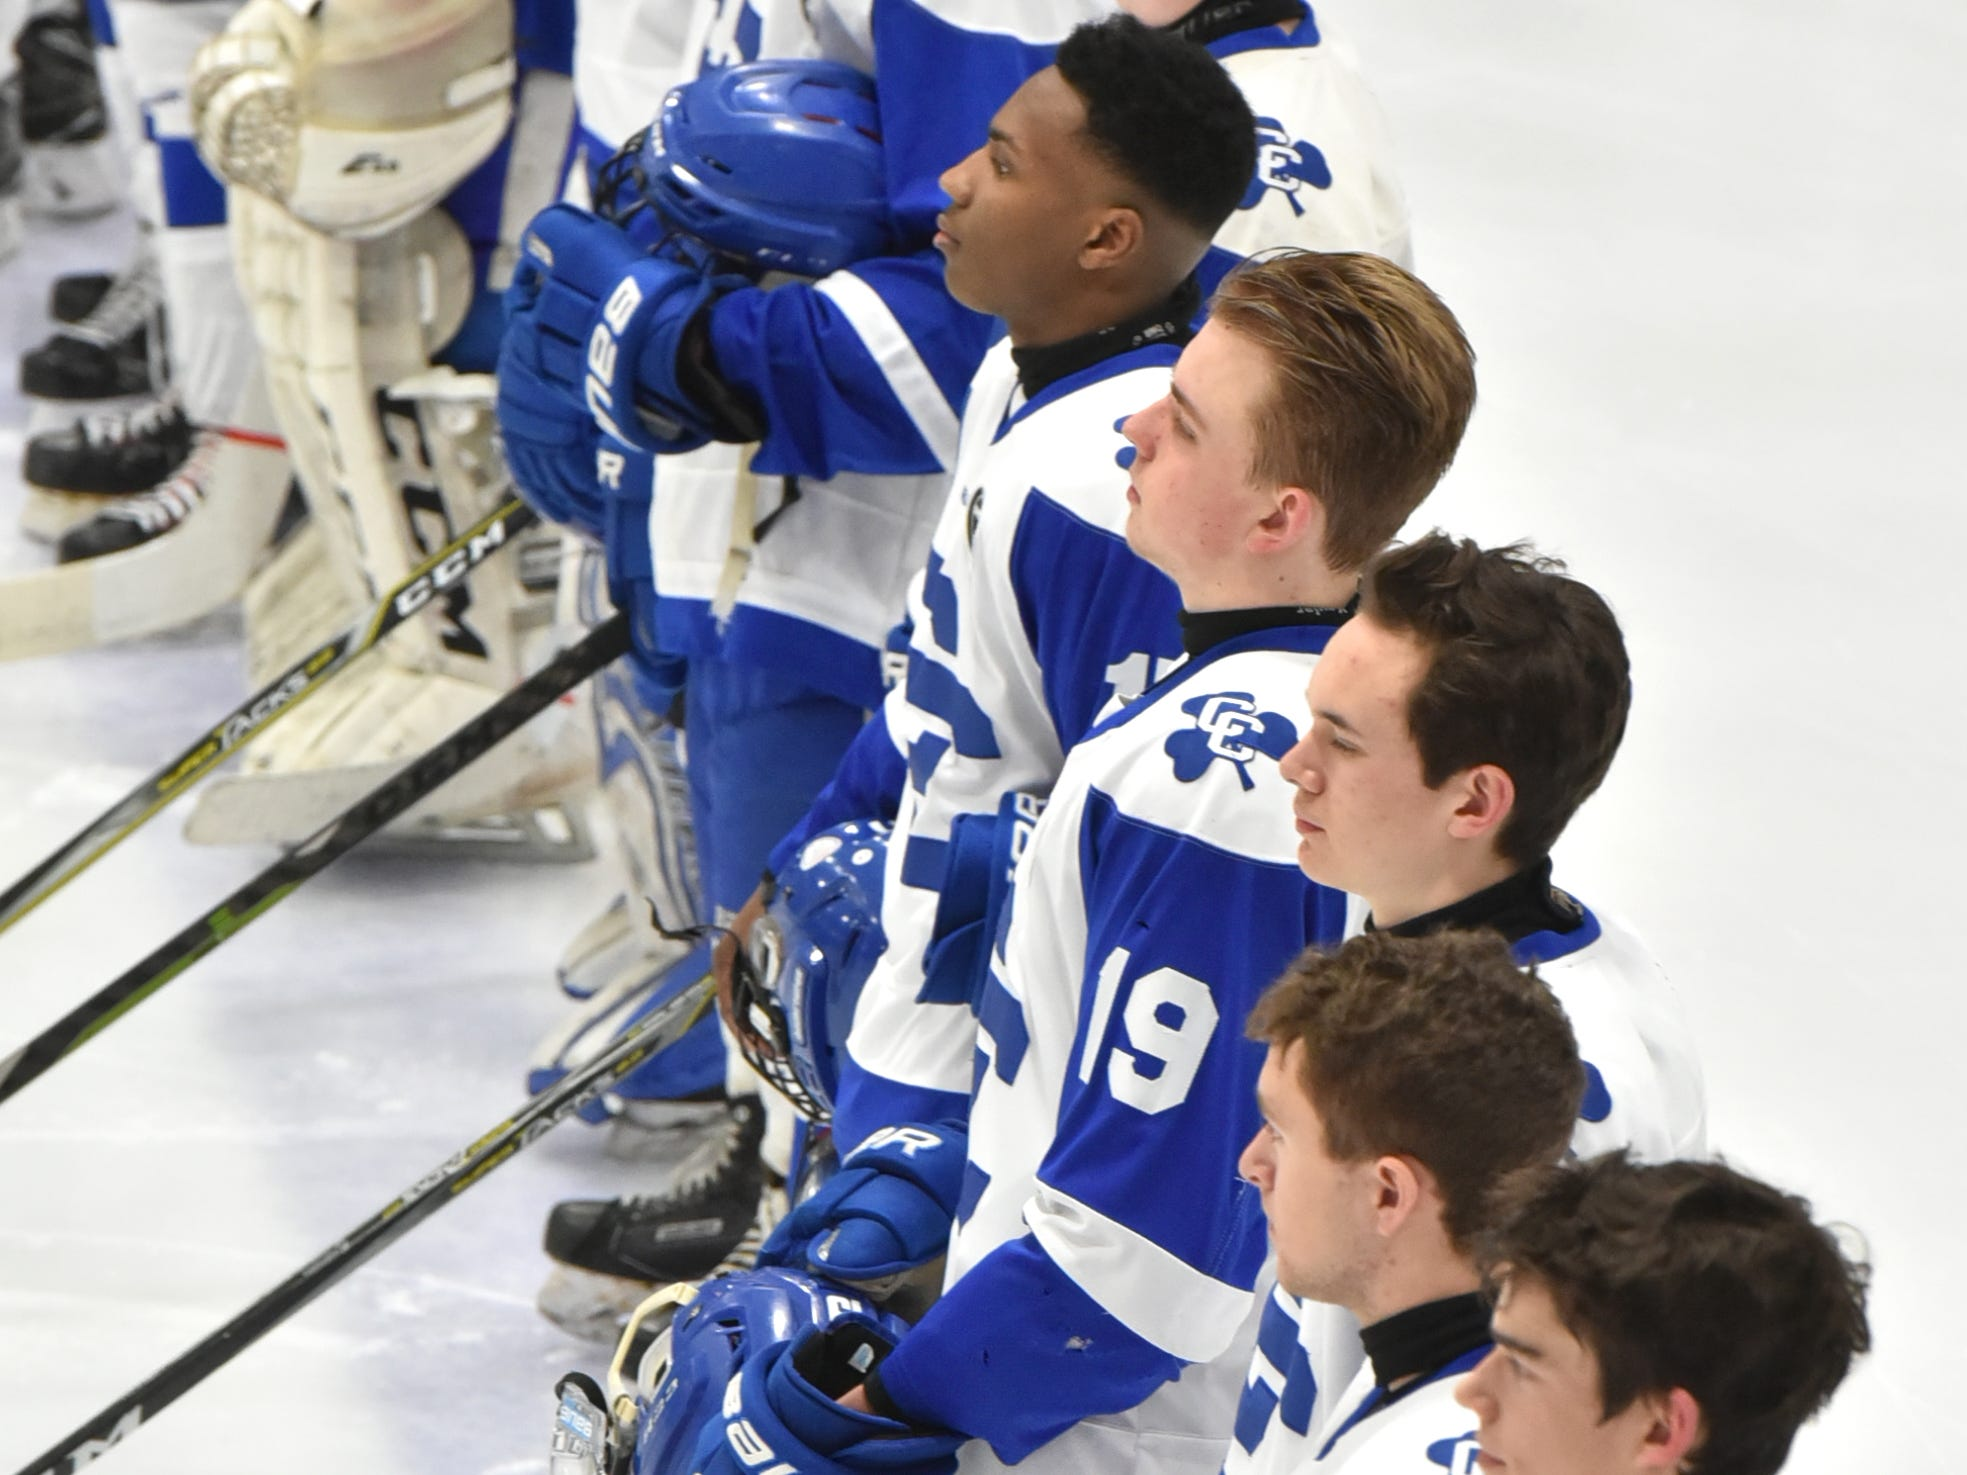 The Detroit Catholic Central hockey team stands at attention for the playing of the National Anthem at the start of their MHSAA Div. 1 state championship game against Saginaw Heritage at the USA Hockey Arena in Plymouth on March 9.